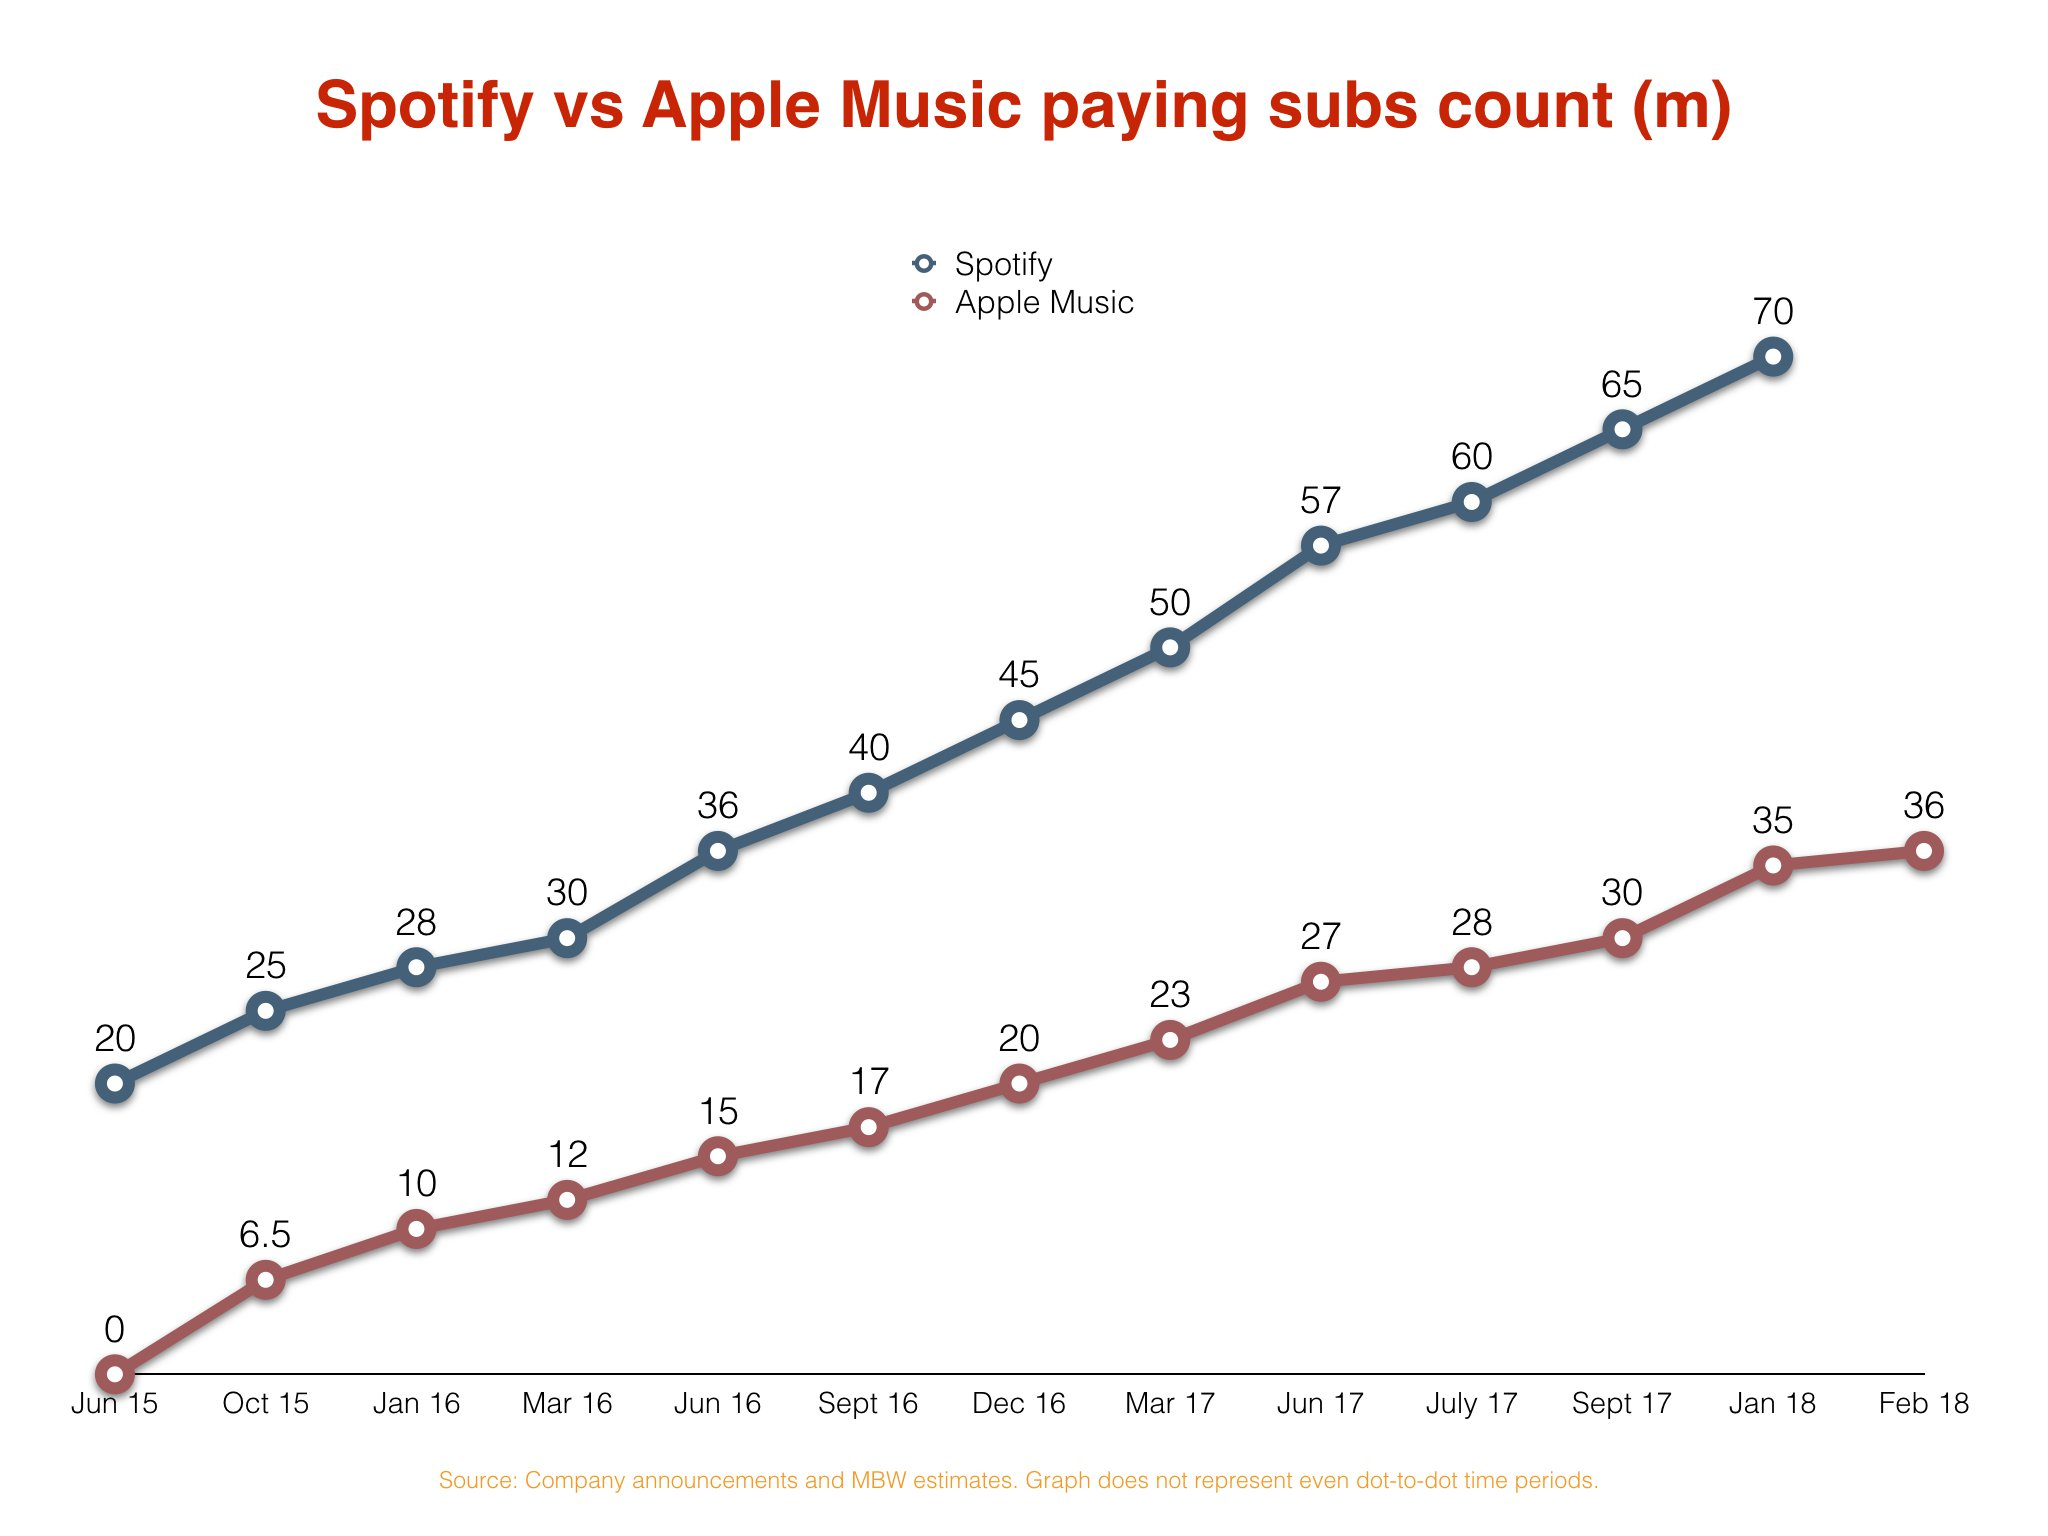 Apple Music growing faster in United States vs. Spotify